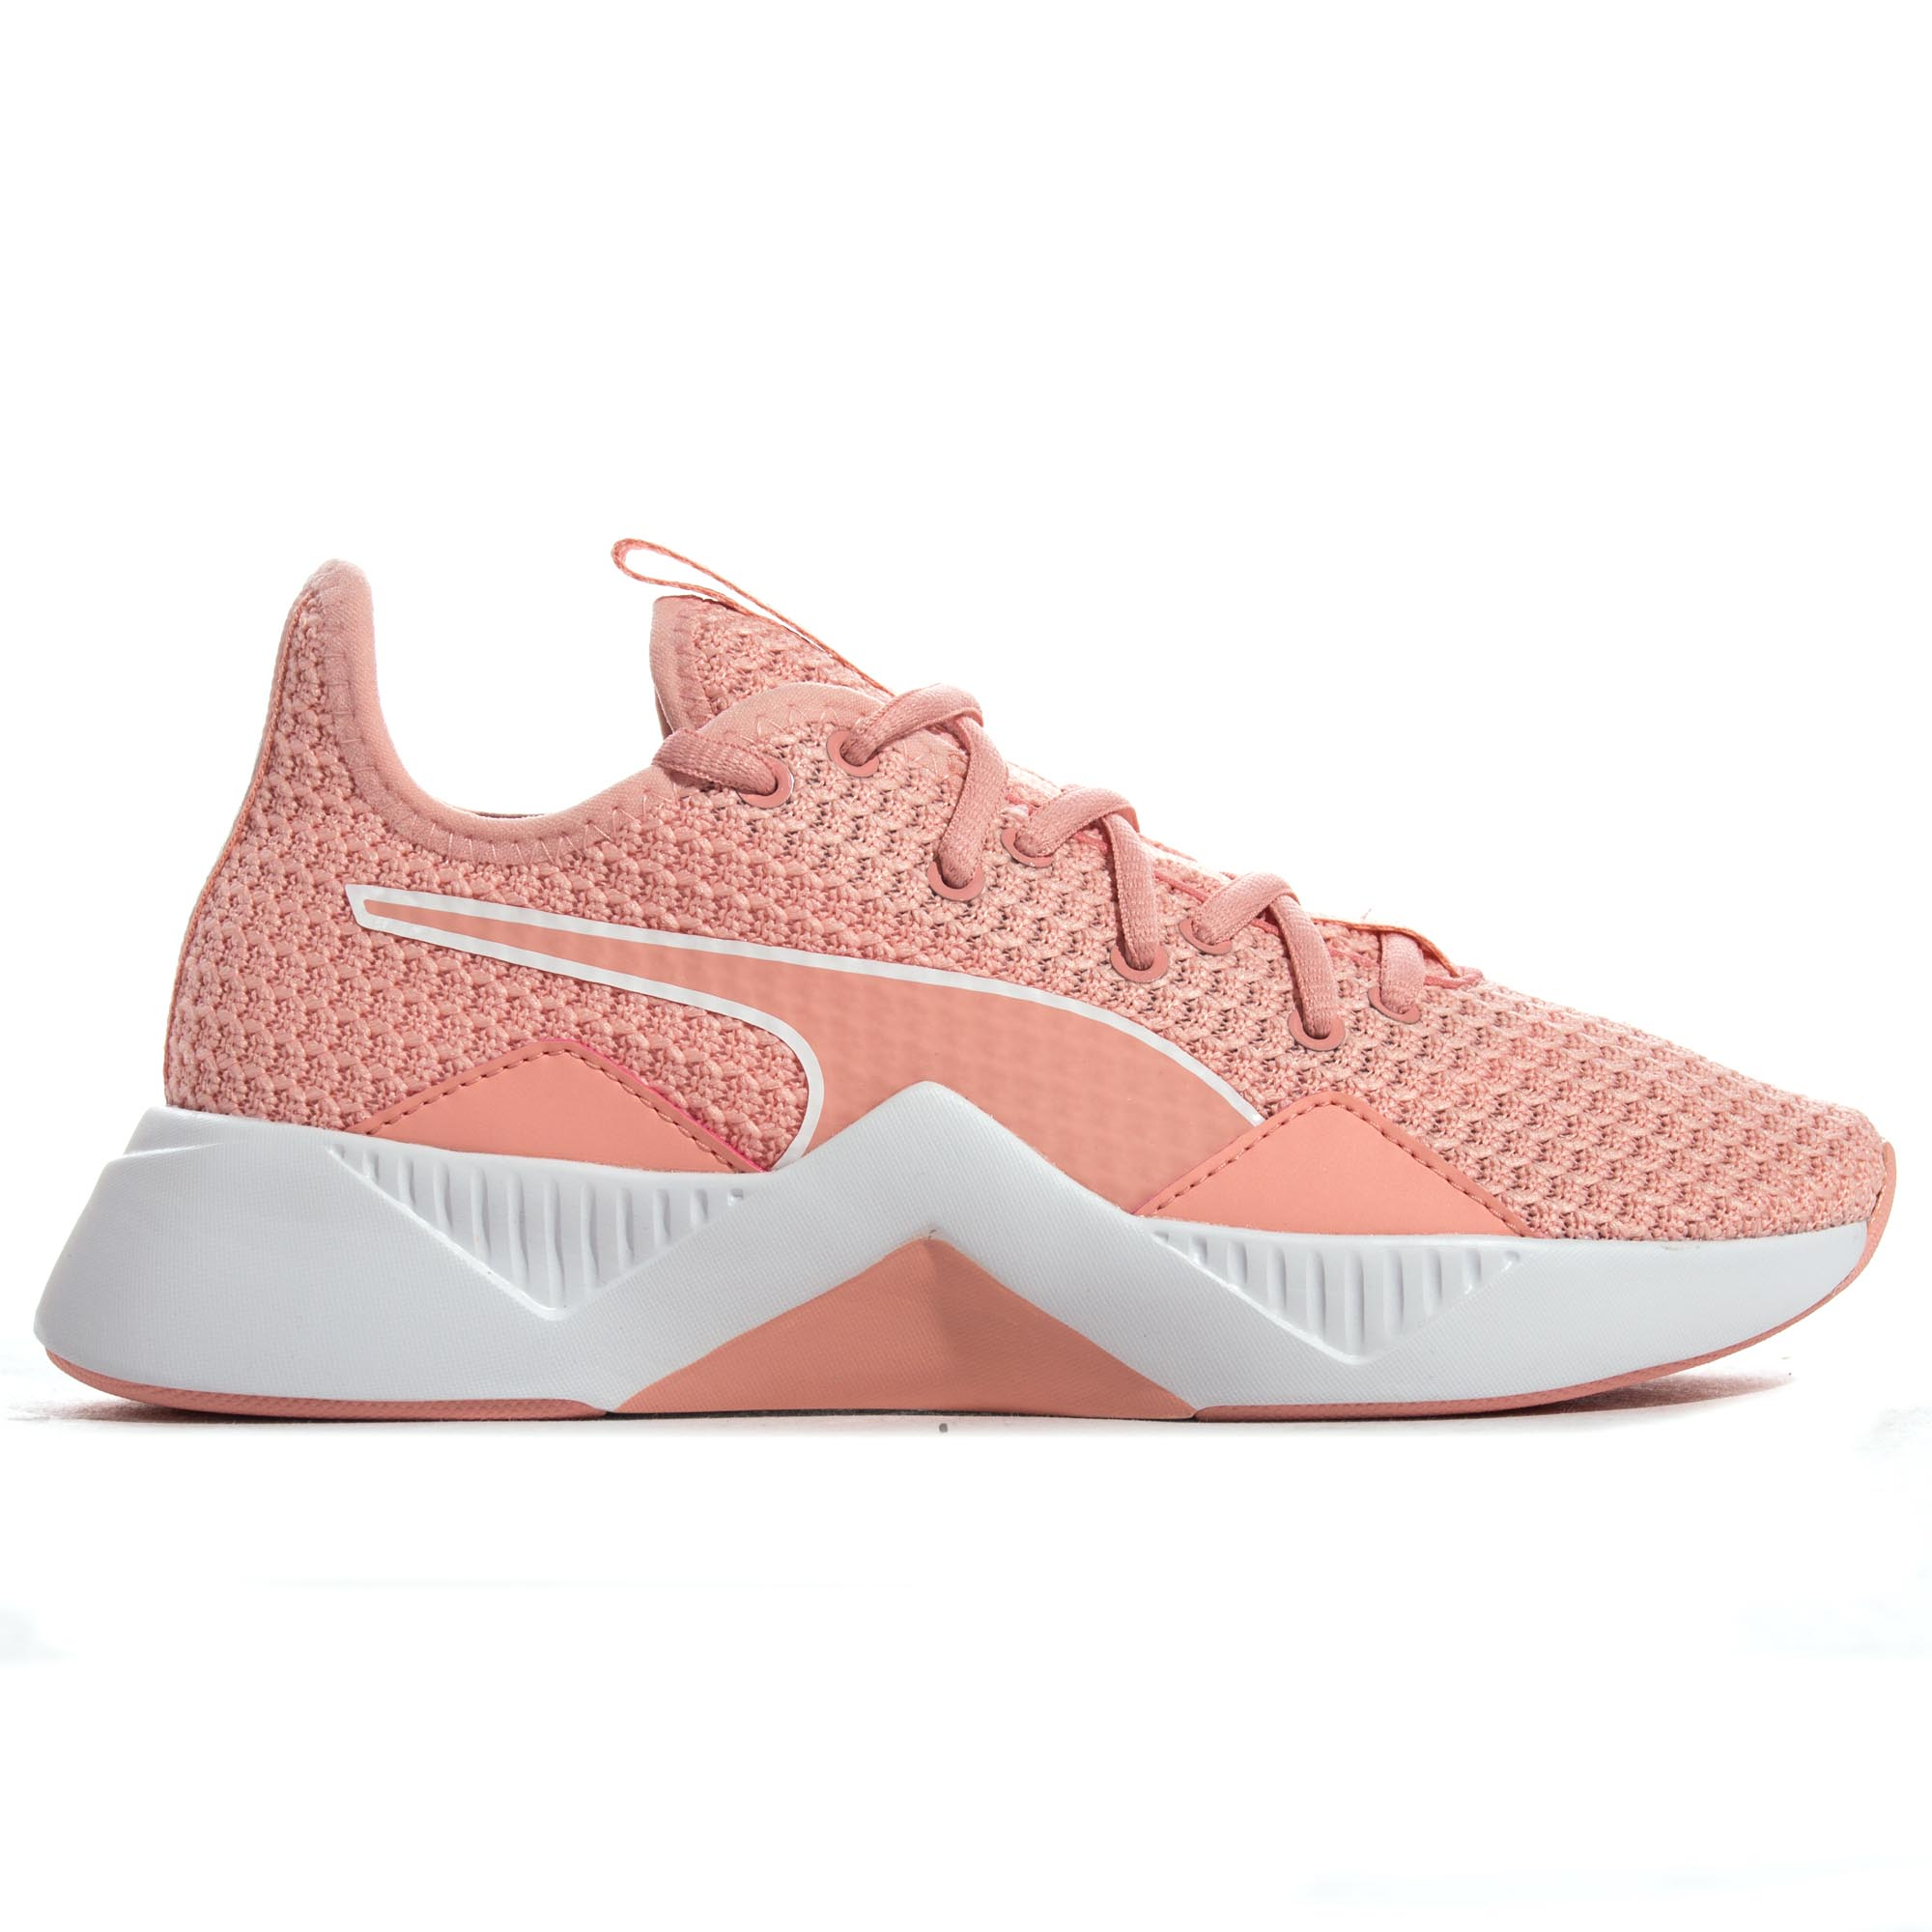 a38e9b4a92 Details about Puma Incite FS Womens Exercise Fitness Training Trainer Shoe  Peach/White